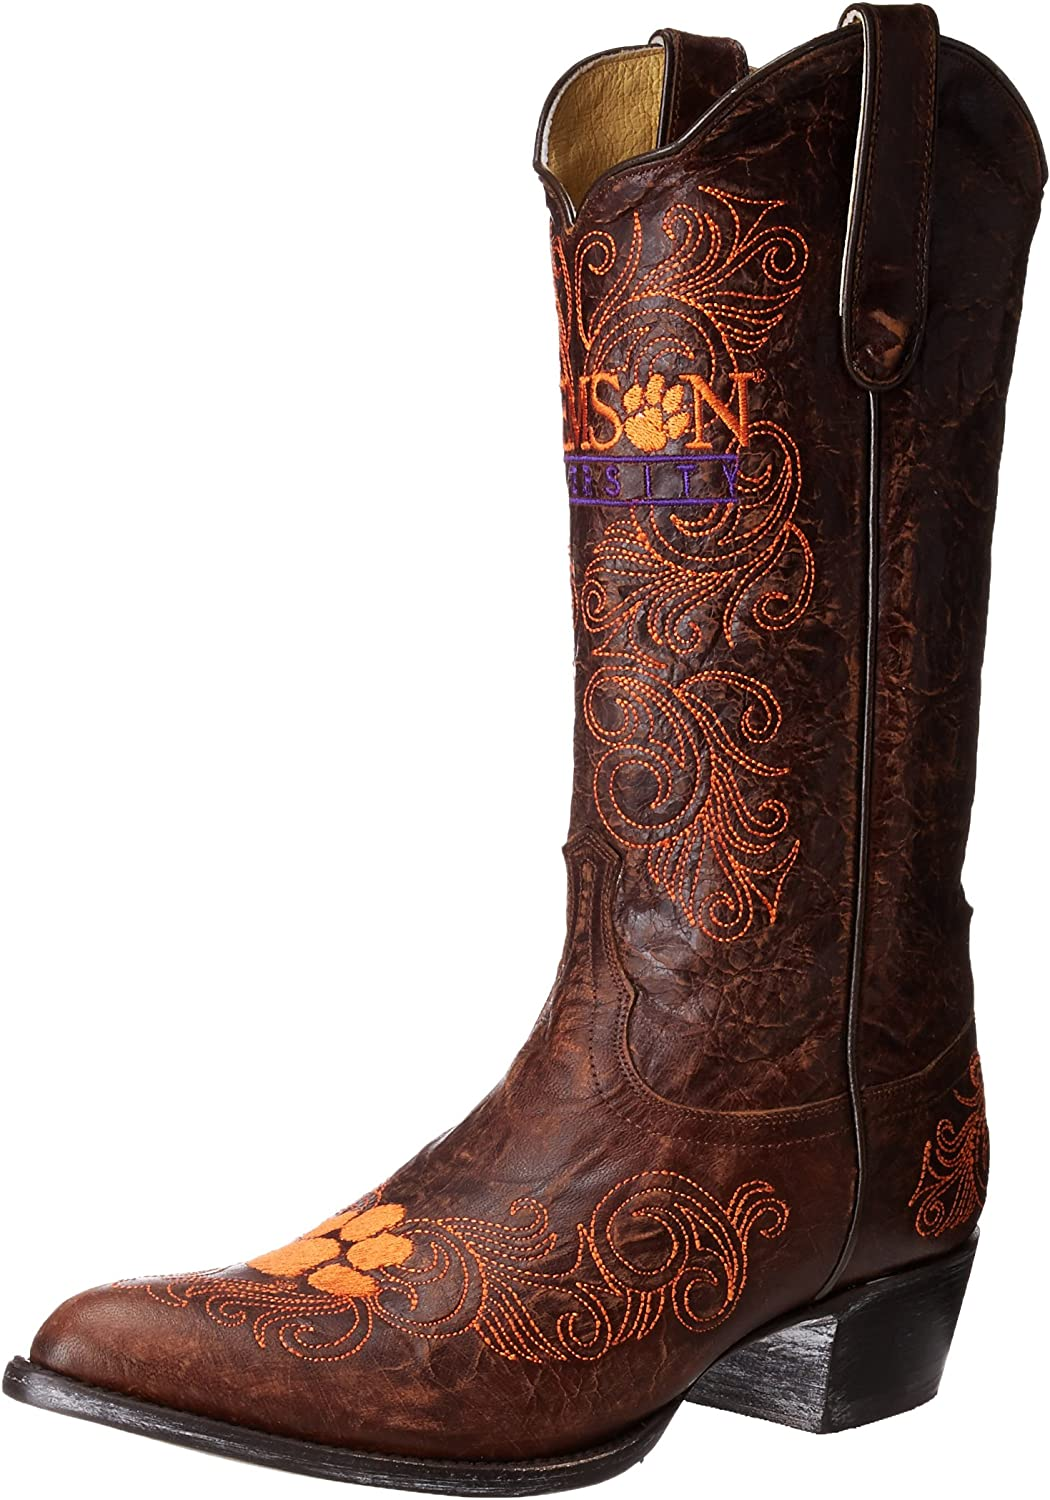 Gameday Women's Clemson University Cowgirl Boot Pointed Toe - Cl L035-1